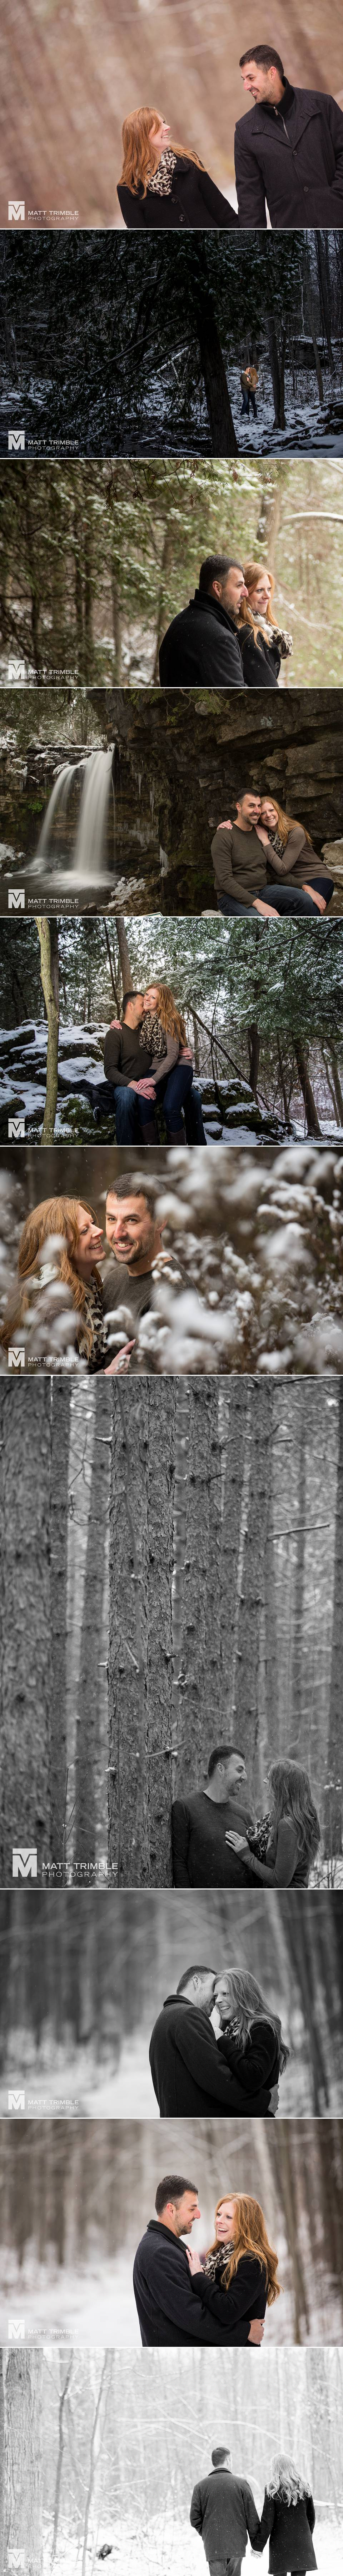 winter-engagement-photography